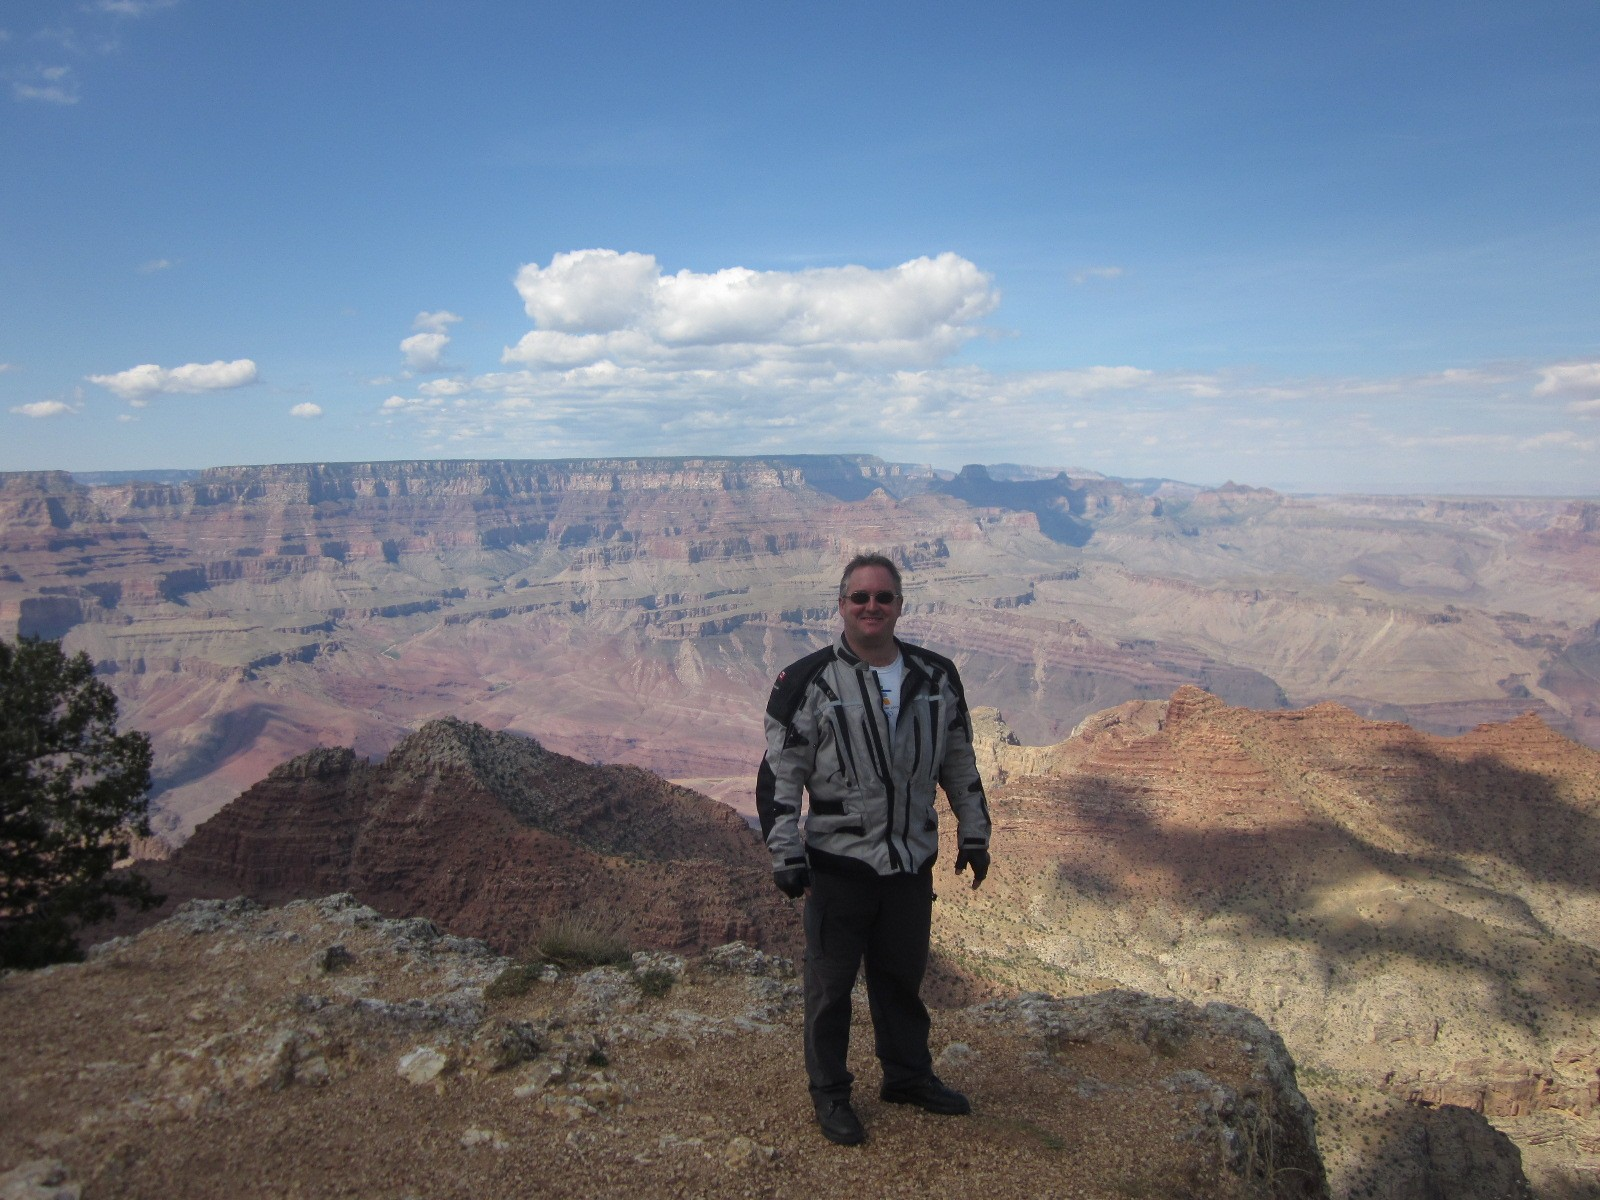 Me on the South Rim